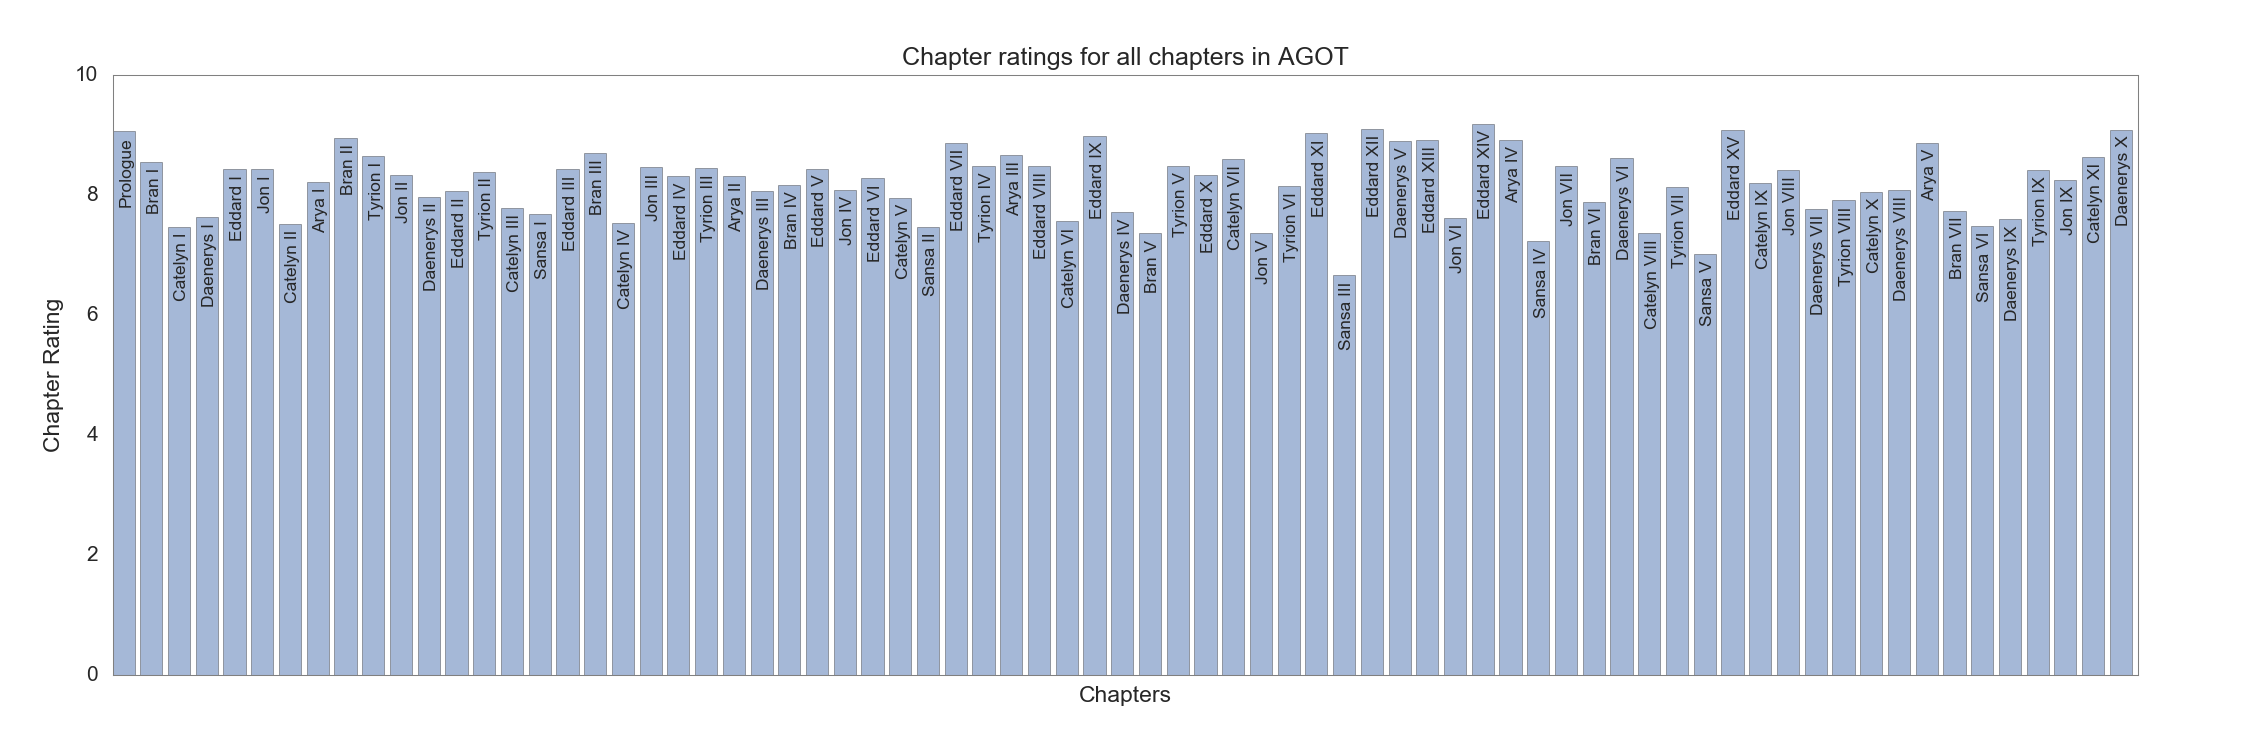 Chapter ratings in AGOT